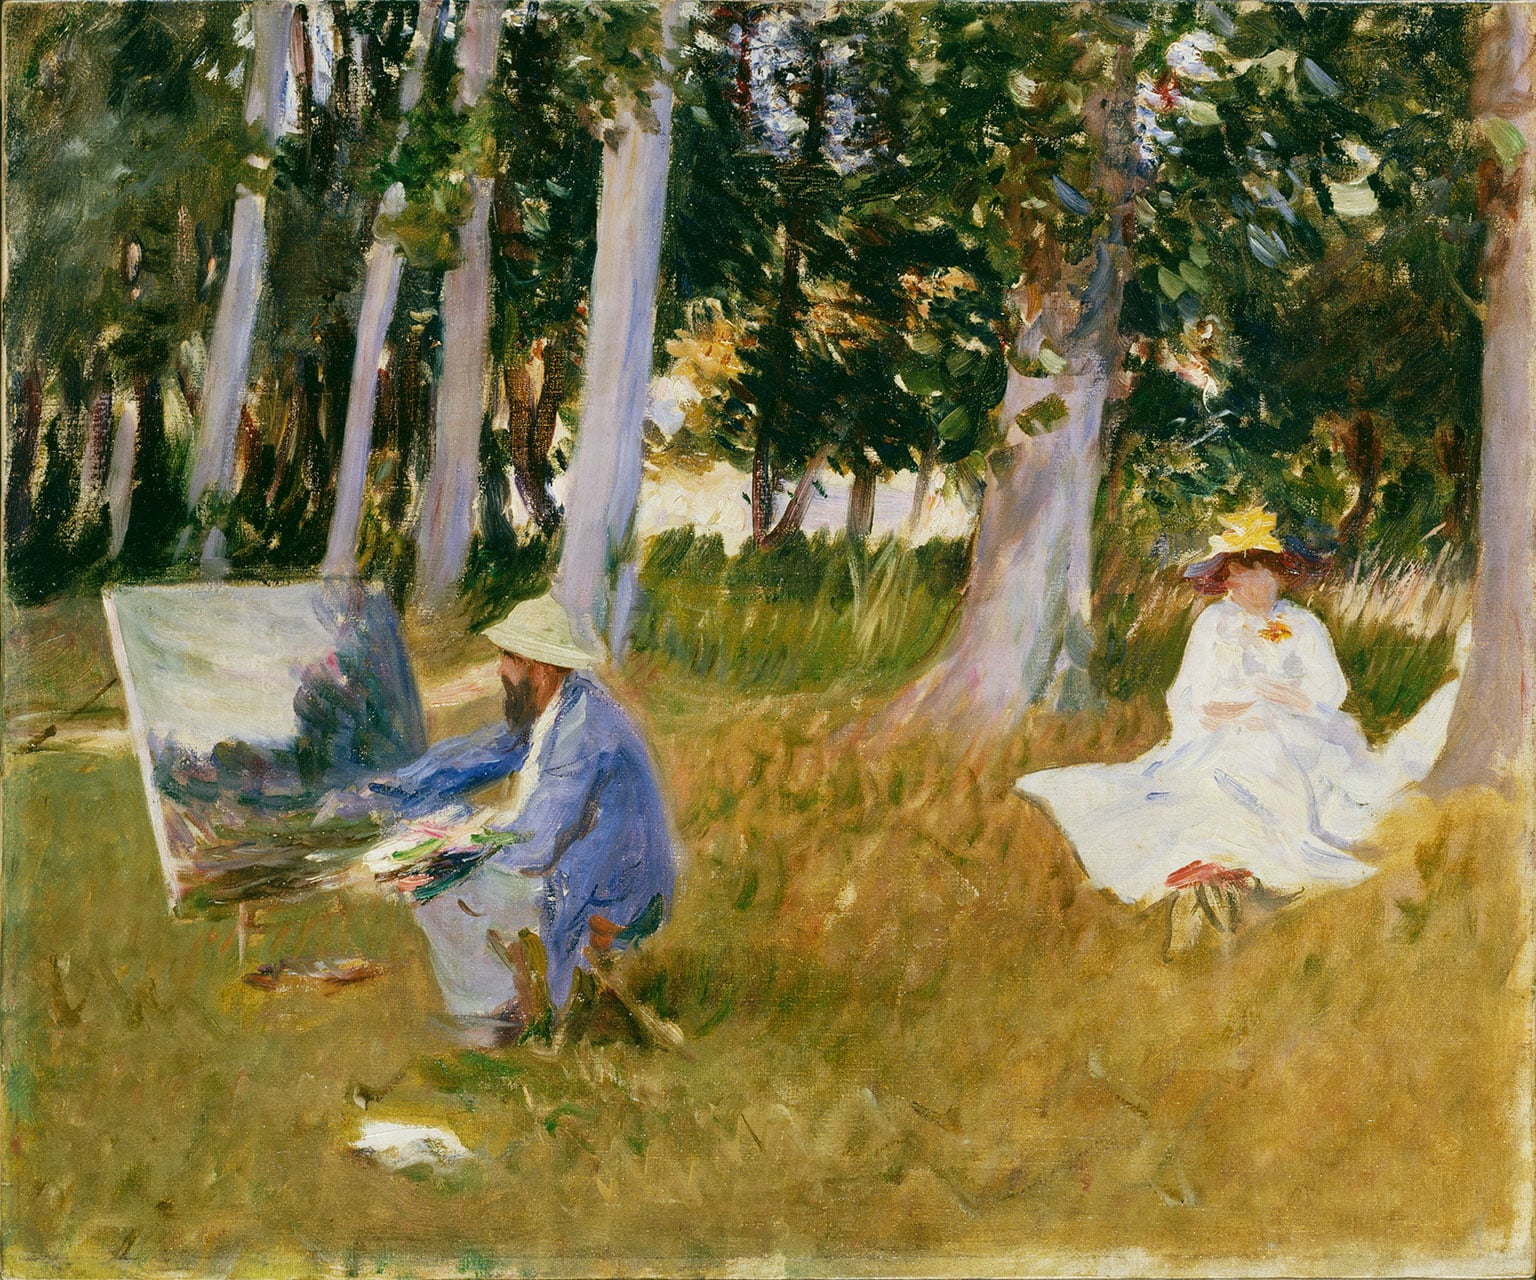 2. John Singer Sargent, Claude Monet, Painting, by the Edge of a Wood, c.1885 - © Tate, London, 2015